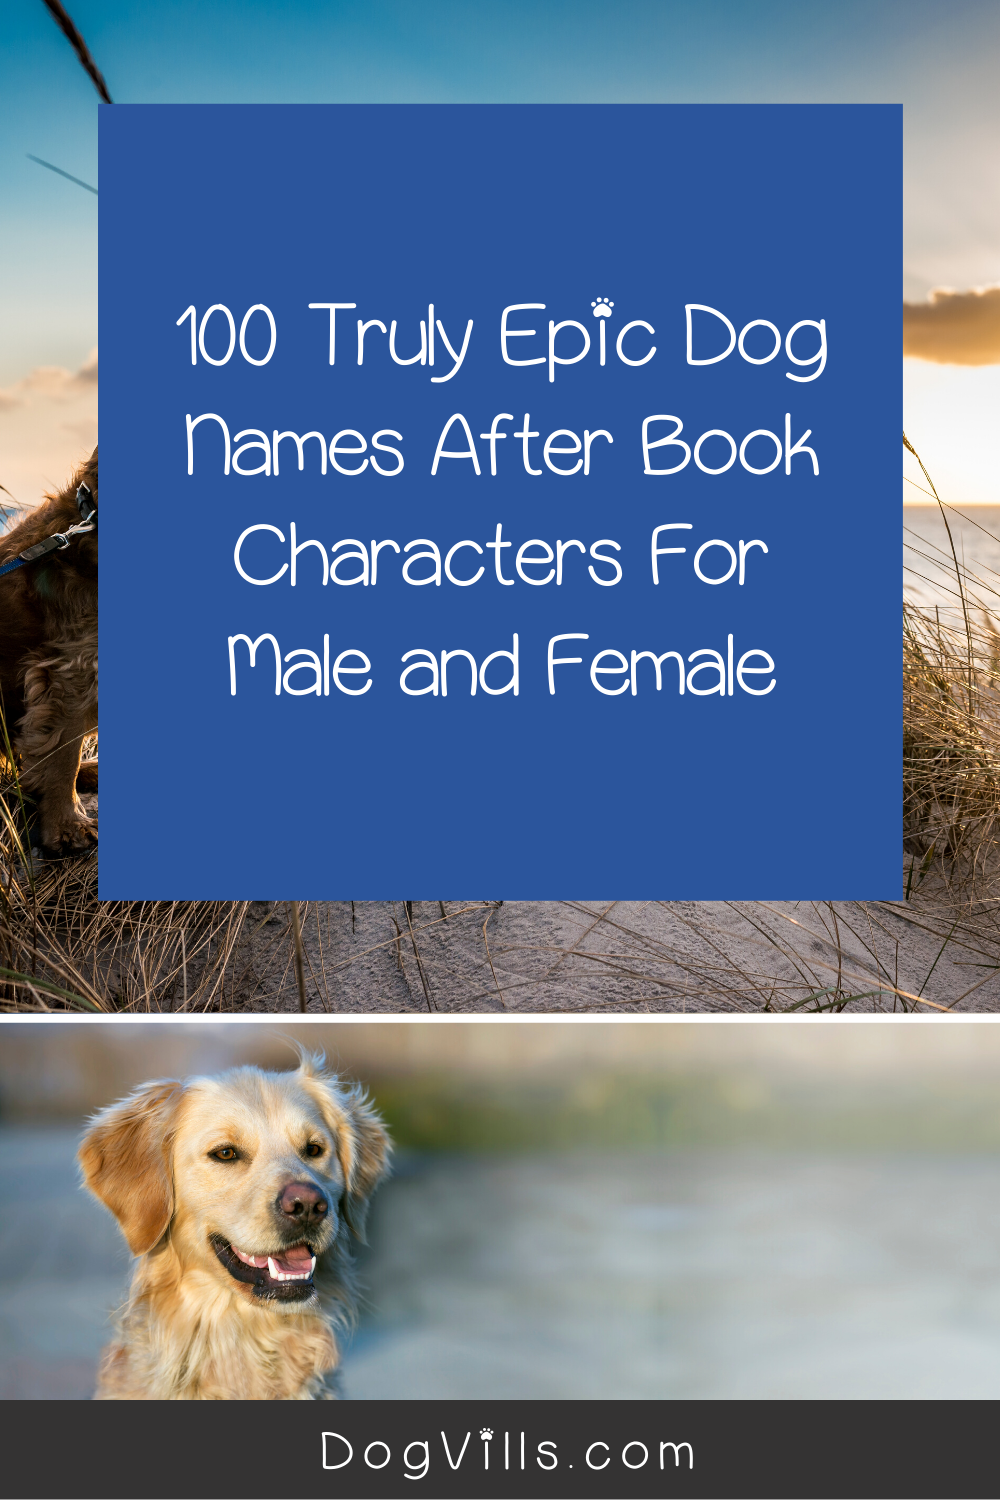 100 Truly Epic Dog Names After Book Characters In 2020 Dog Names